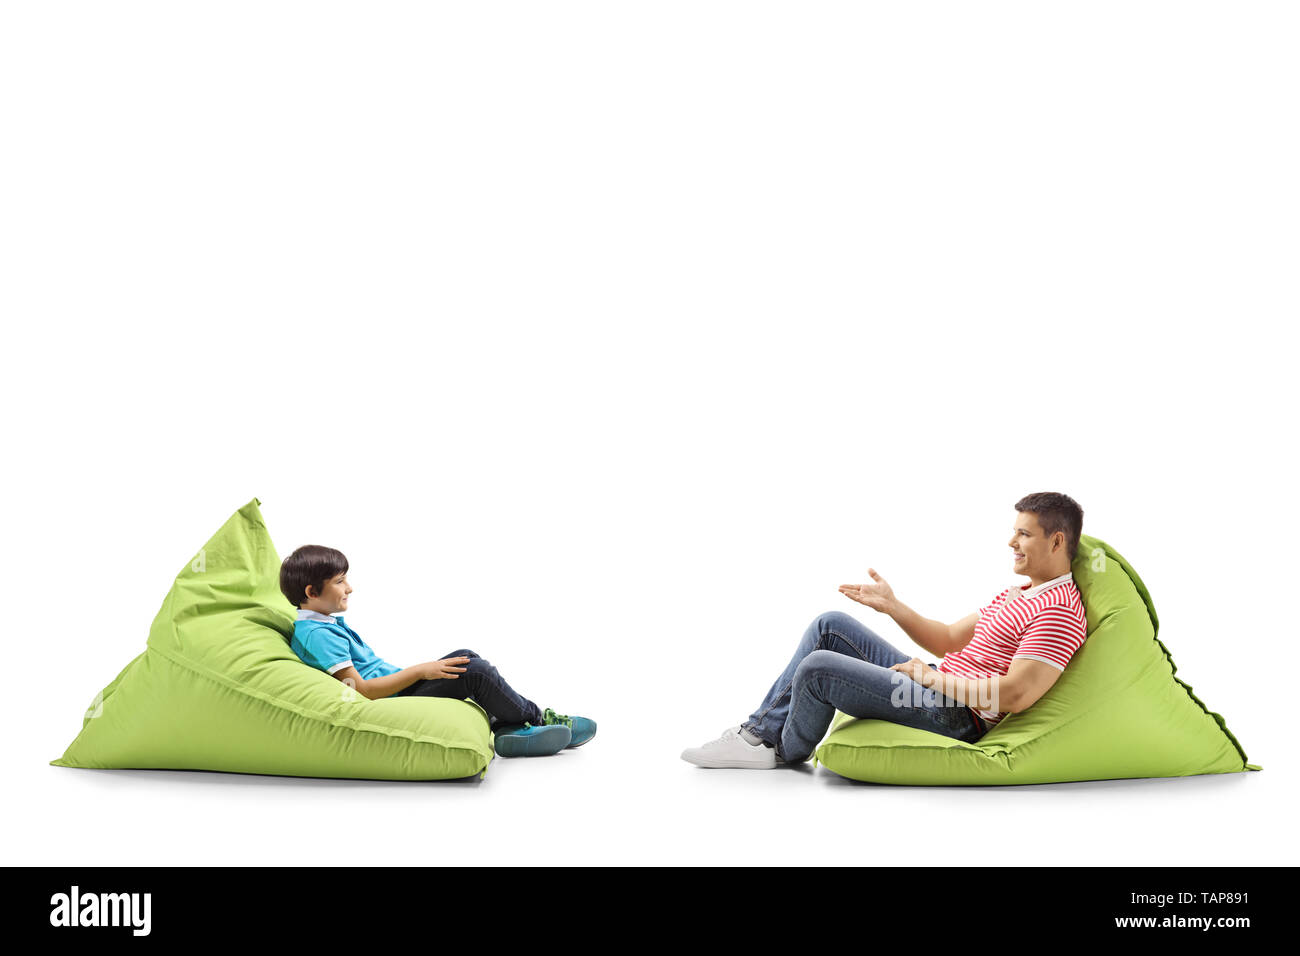 Full length profile shot of a father and son sitting on green bean bags and talking isolated on white background - Stock Image